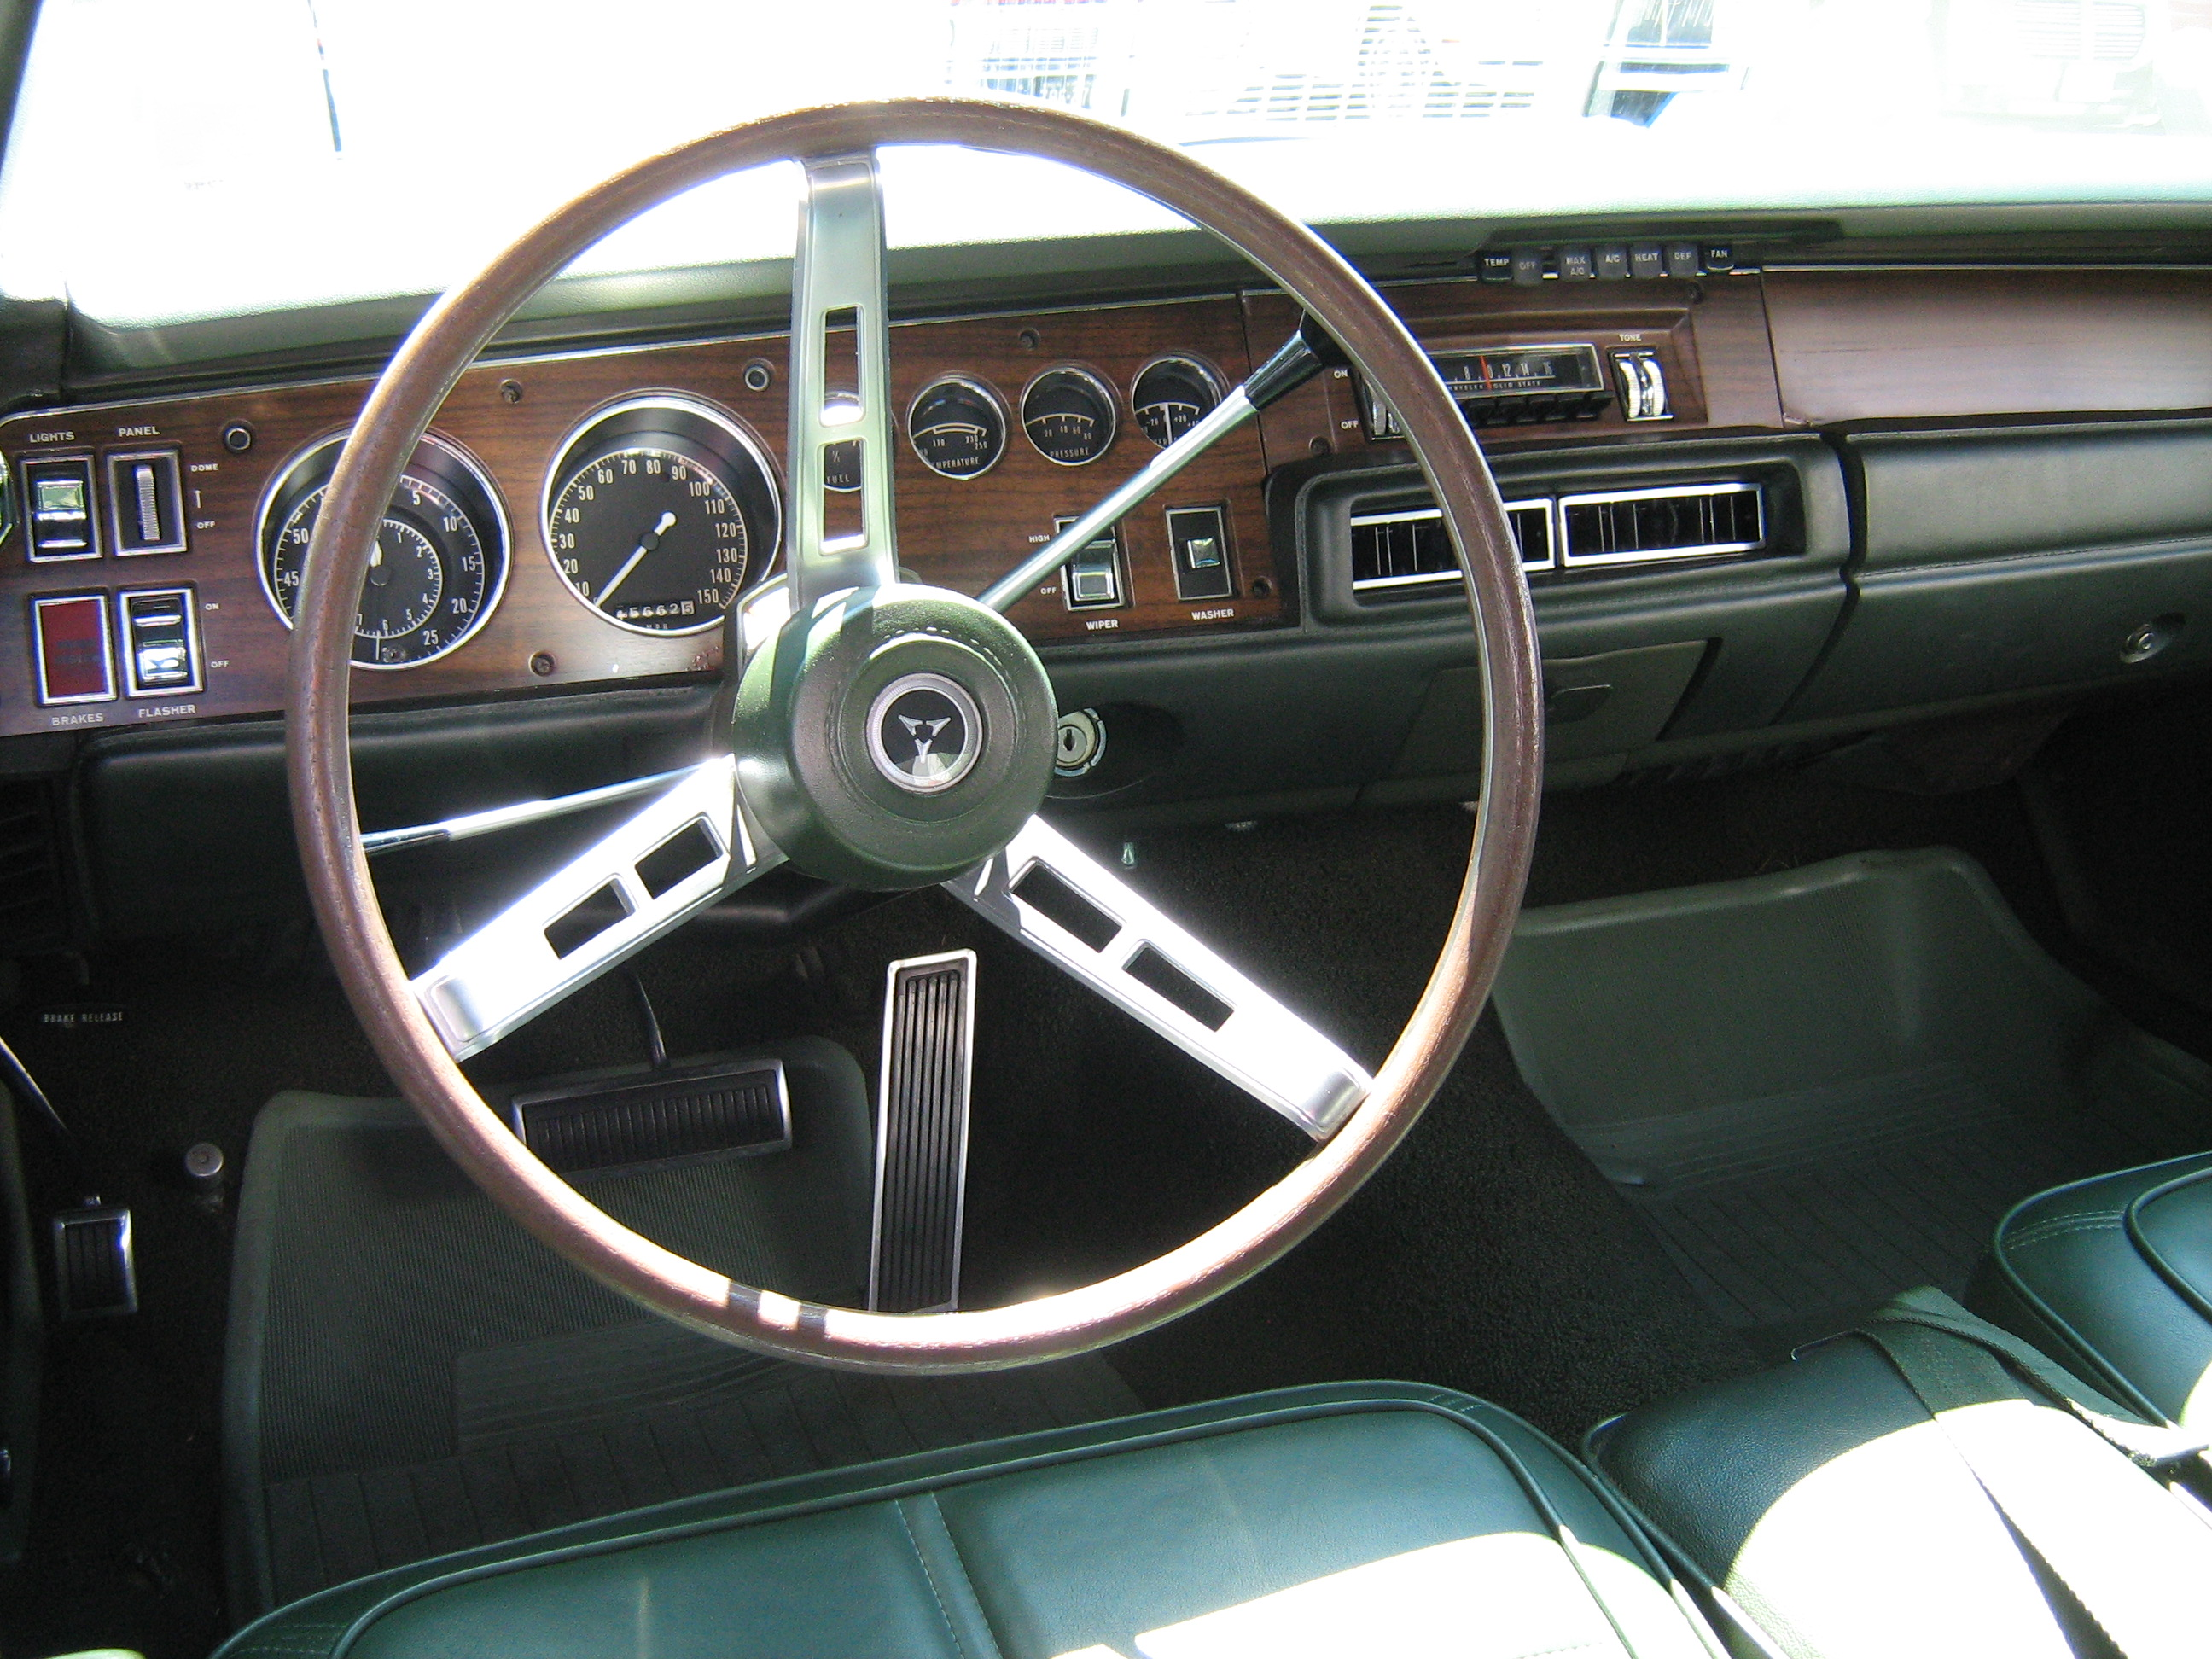 1969 Dodge Charger Interior